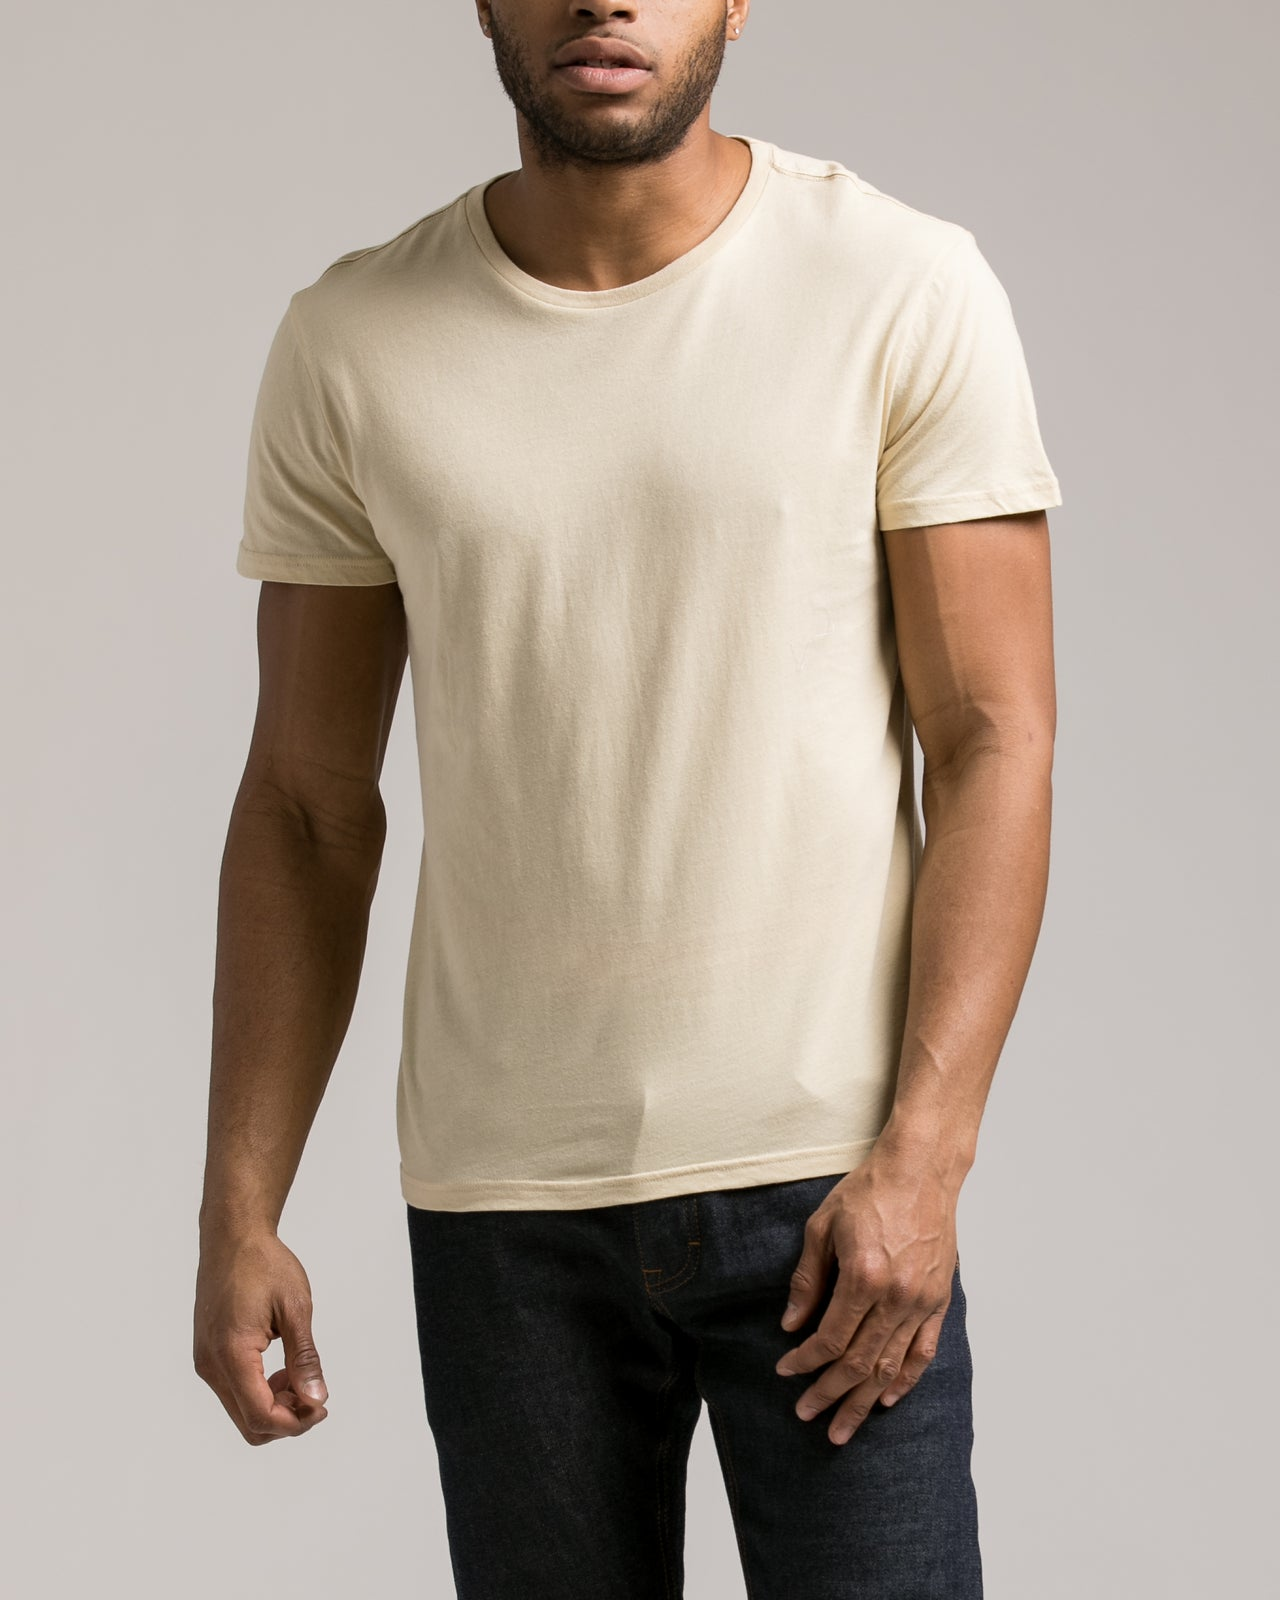 The Daily Tee 2.0 - Color: Khaki | Beige